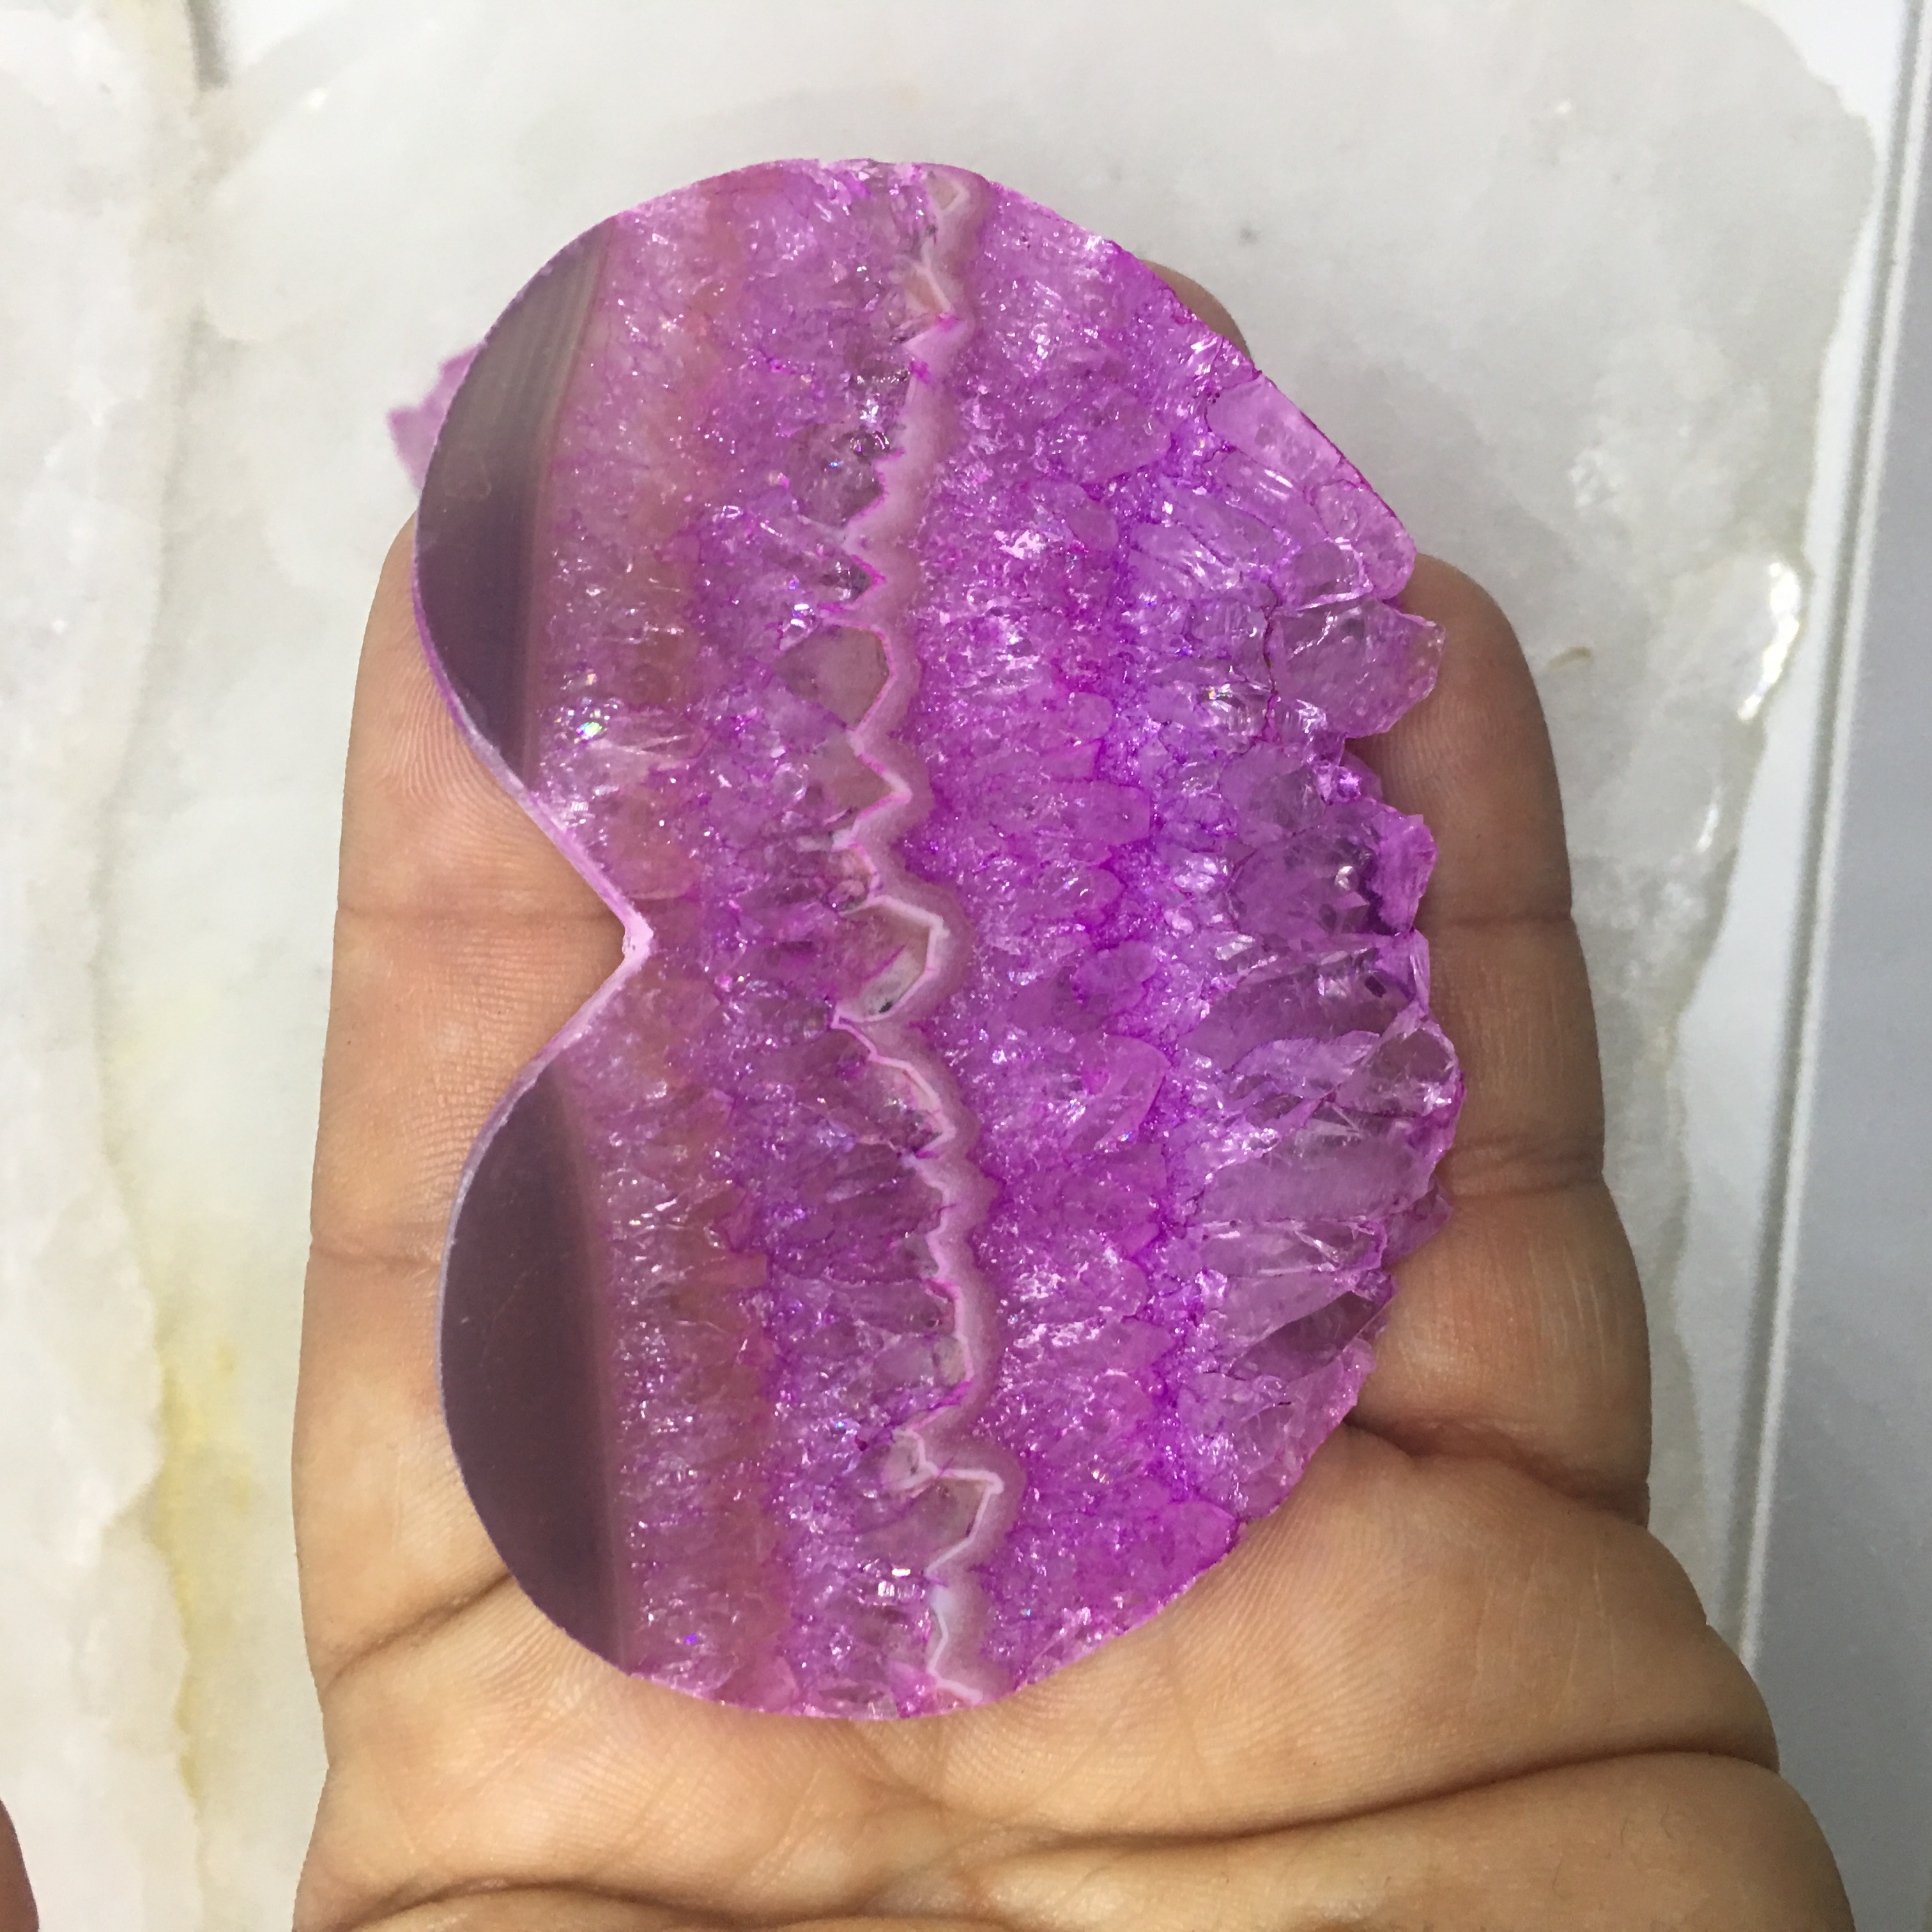 Stones from Uruguay - Pink Dyed Amethyst Druzy Heart Slice for Jewelry Making